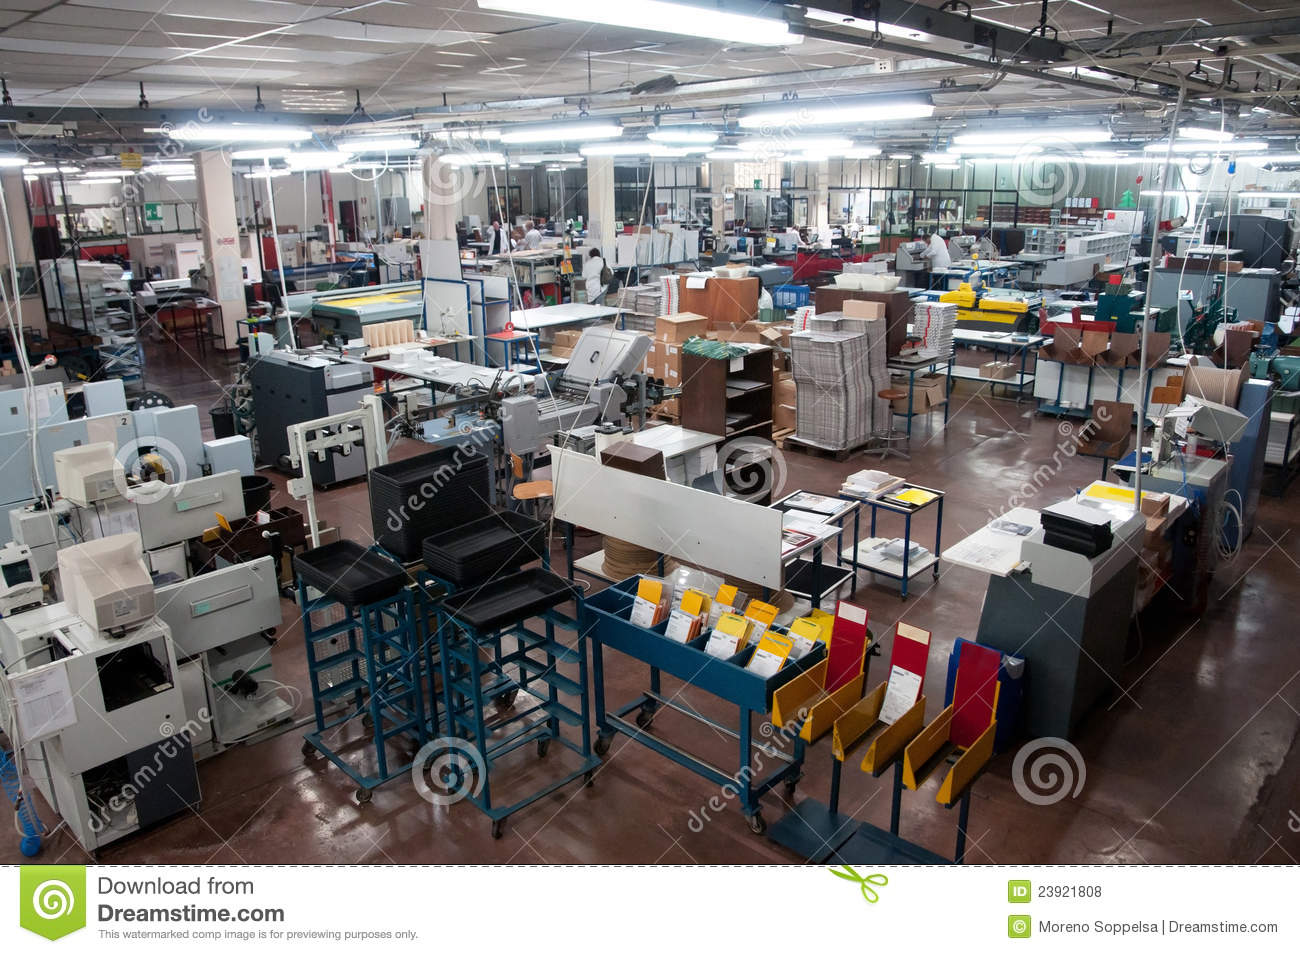 Royalty Free Stock Photos: Large centralized photo developing labs: dreamstime.com/royalty-free-stock-photos-large-centralized-photo...